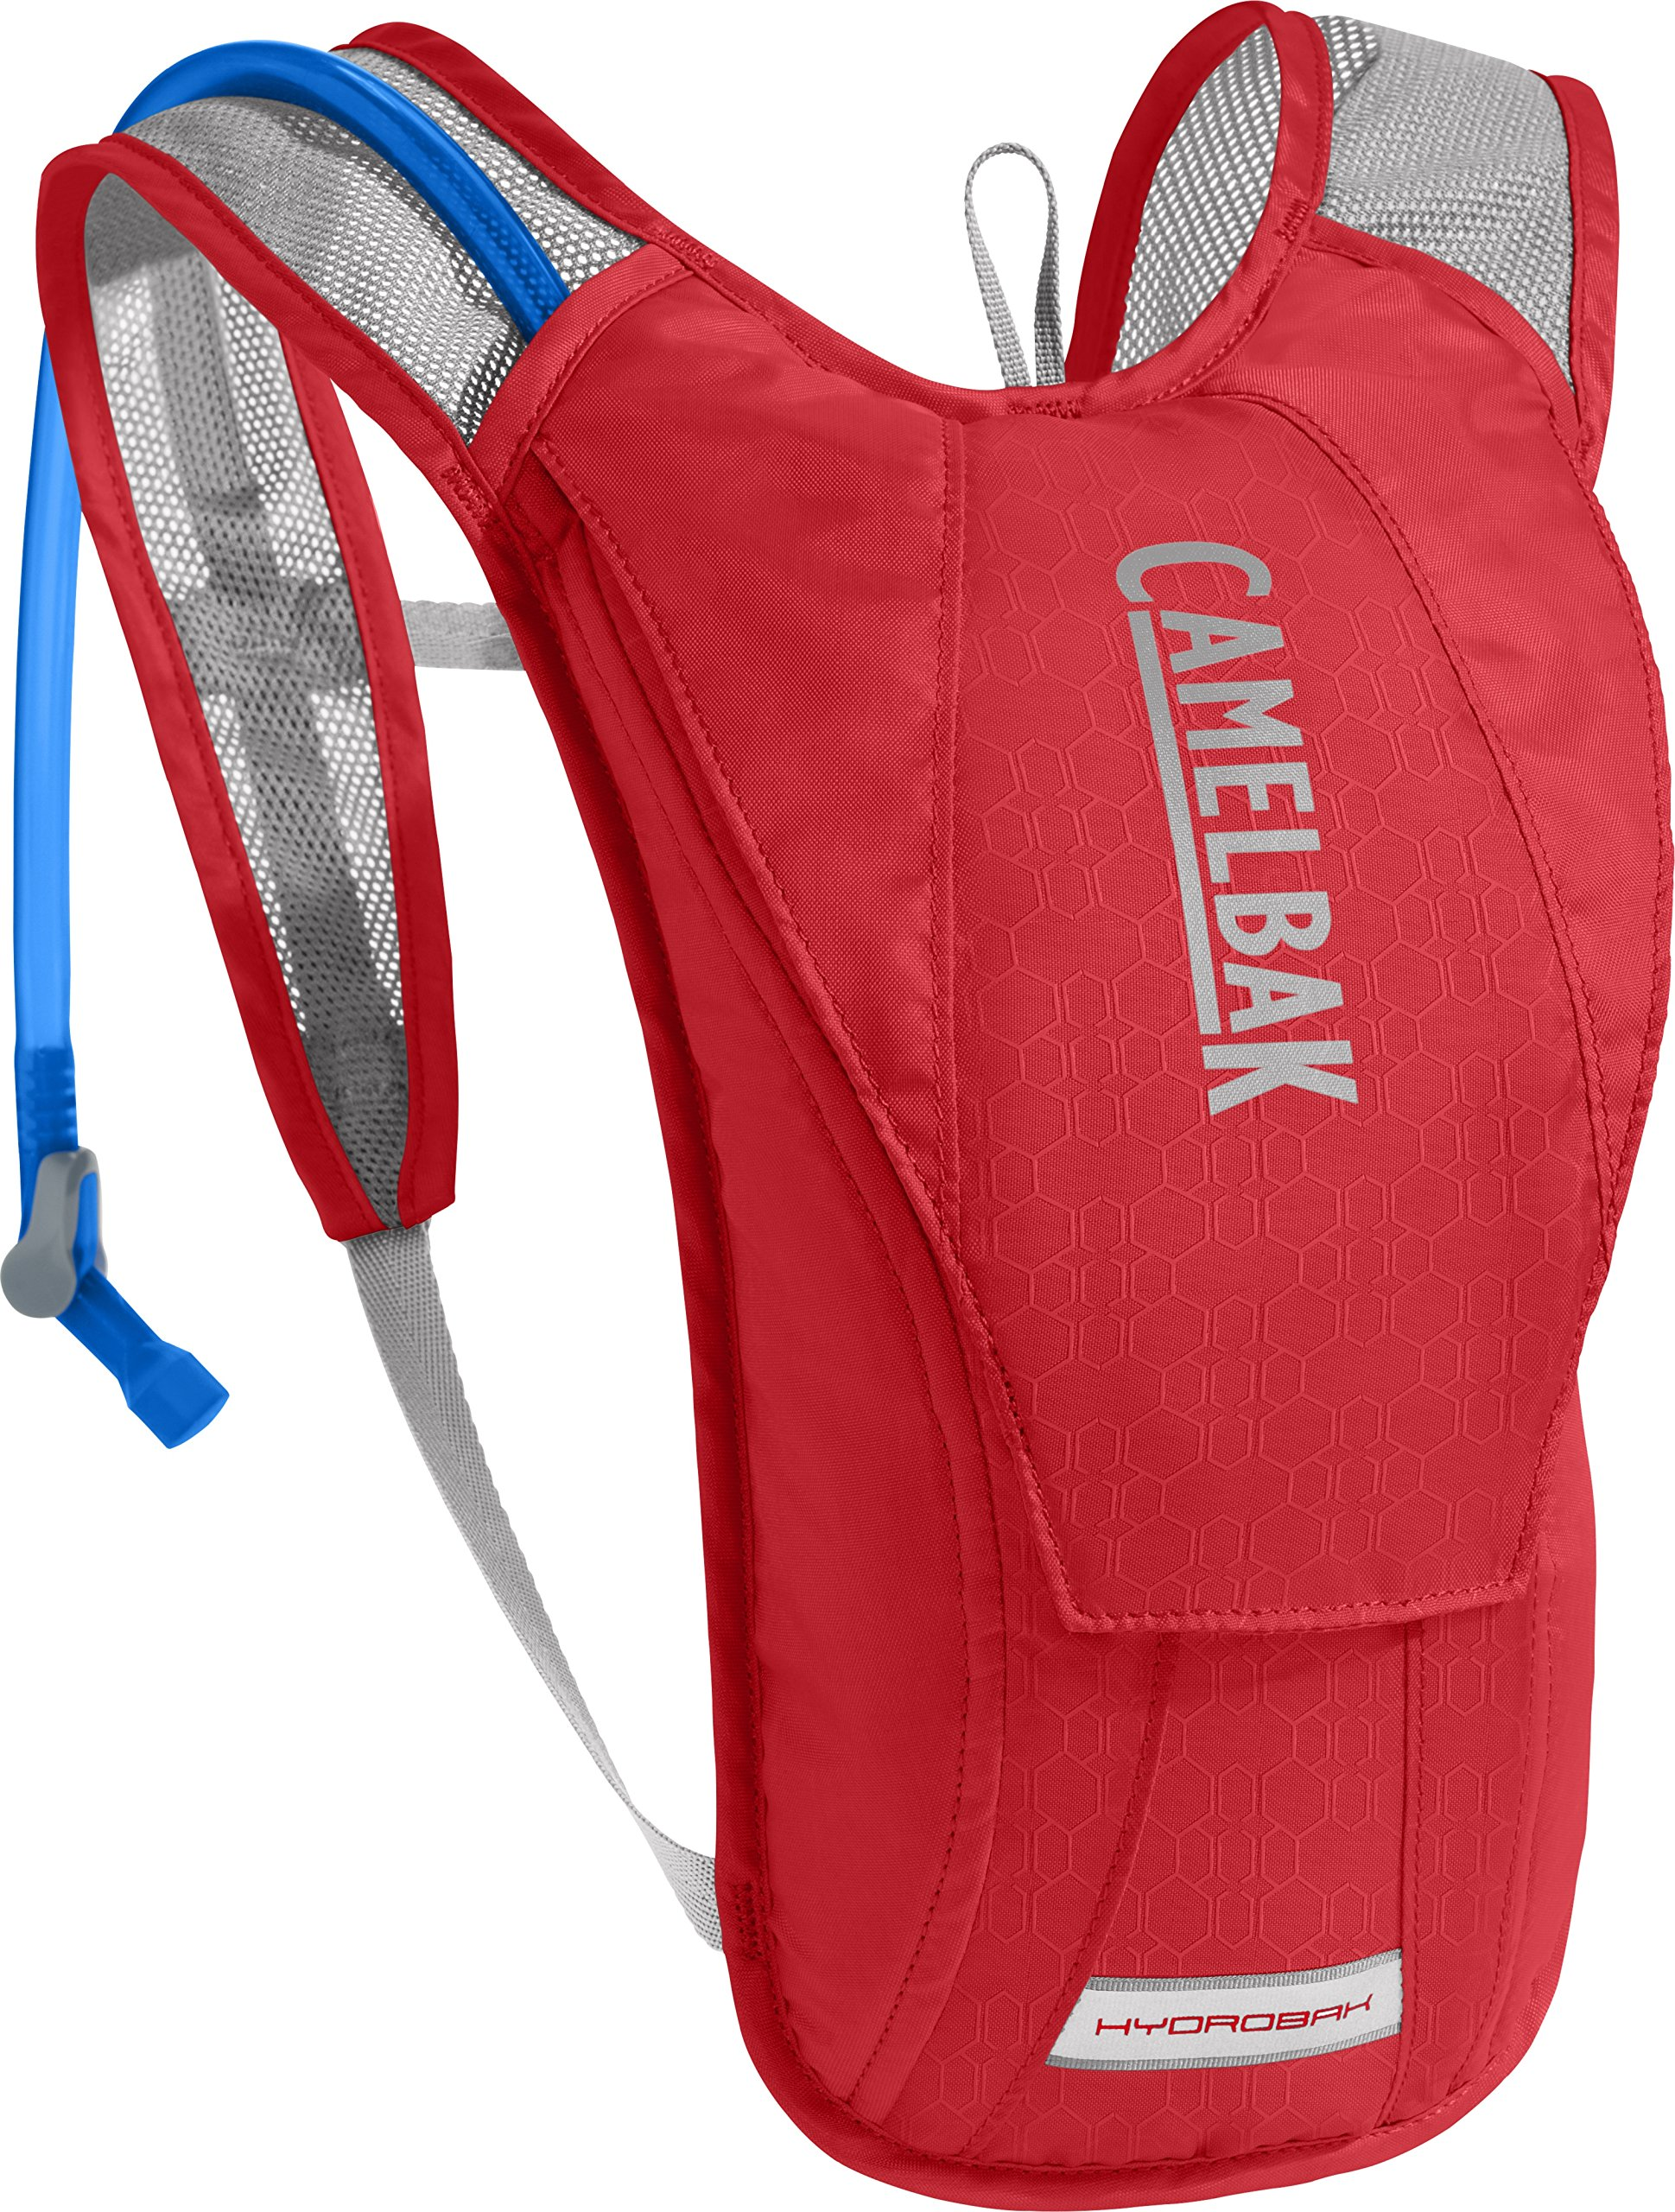 CamelBak HydroBak Crux Reservoir Hydration Pack, Racing Red/Silver, 1.5 L/50 oz